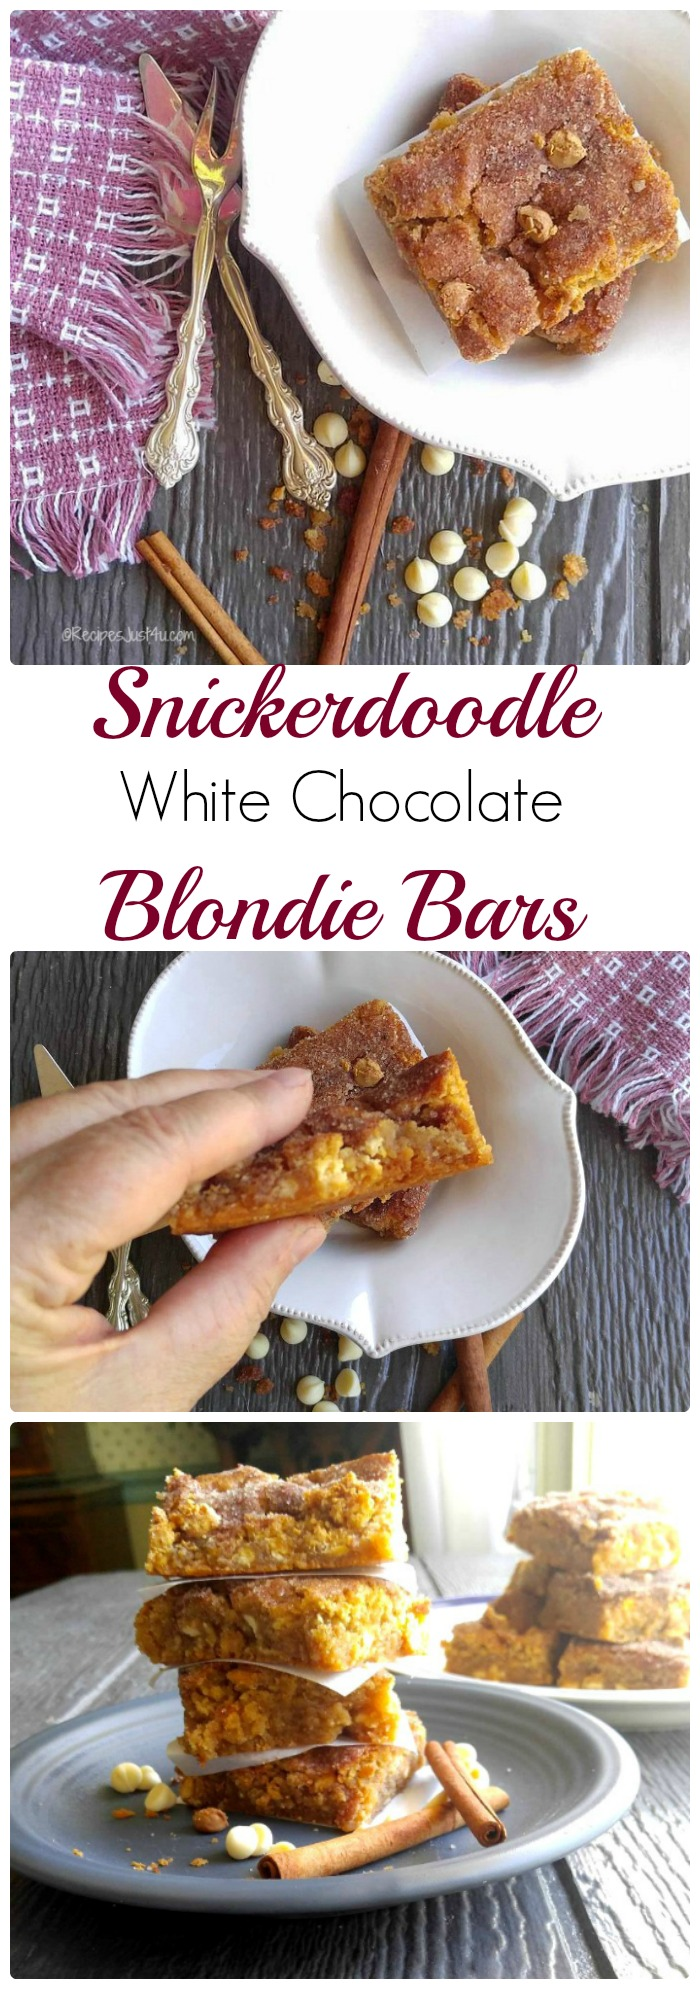 White Chocolate Snickerdoodle Blondie Bars